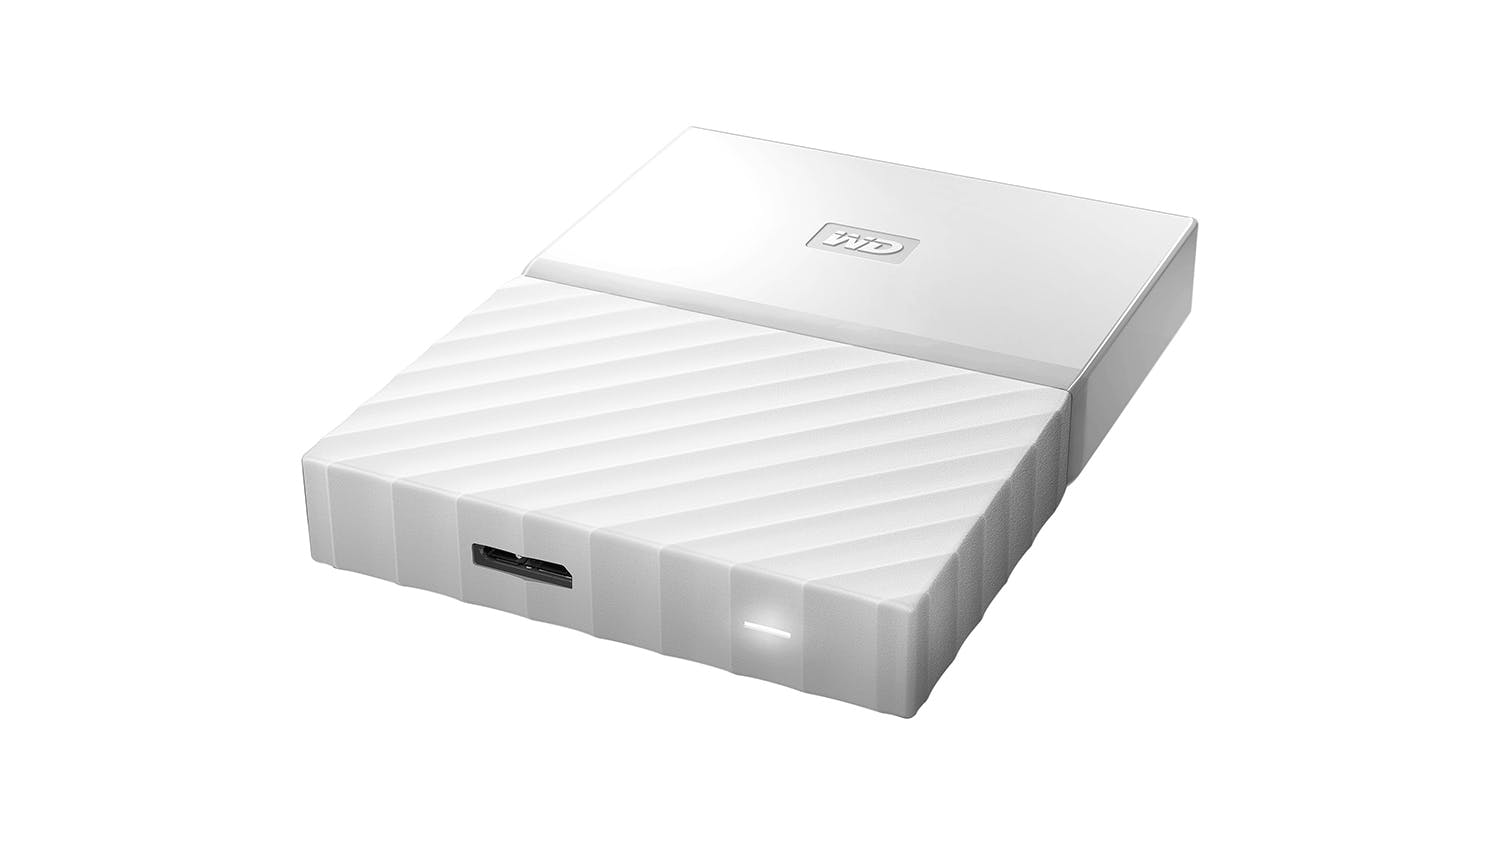 WD My Passport USB 3.0 Portable Hard Drive - 1TB